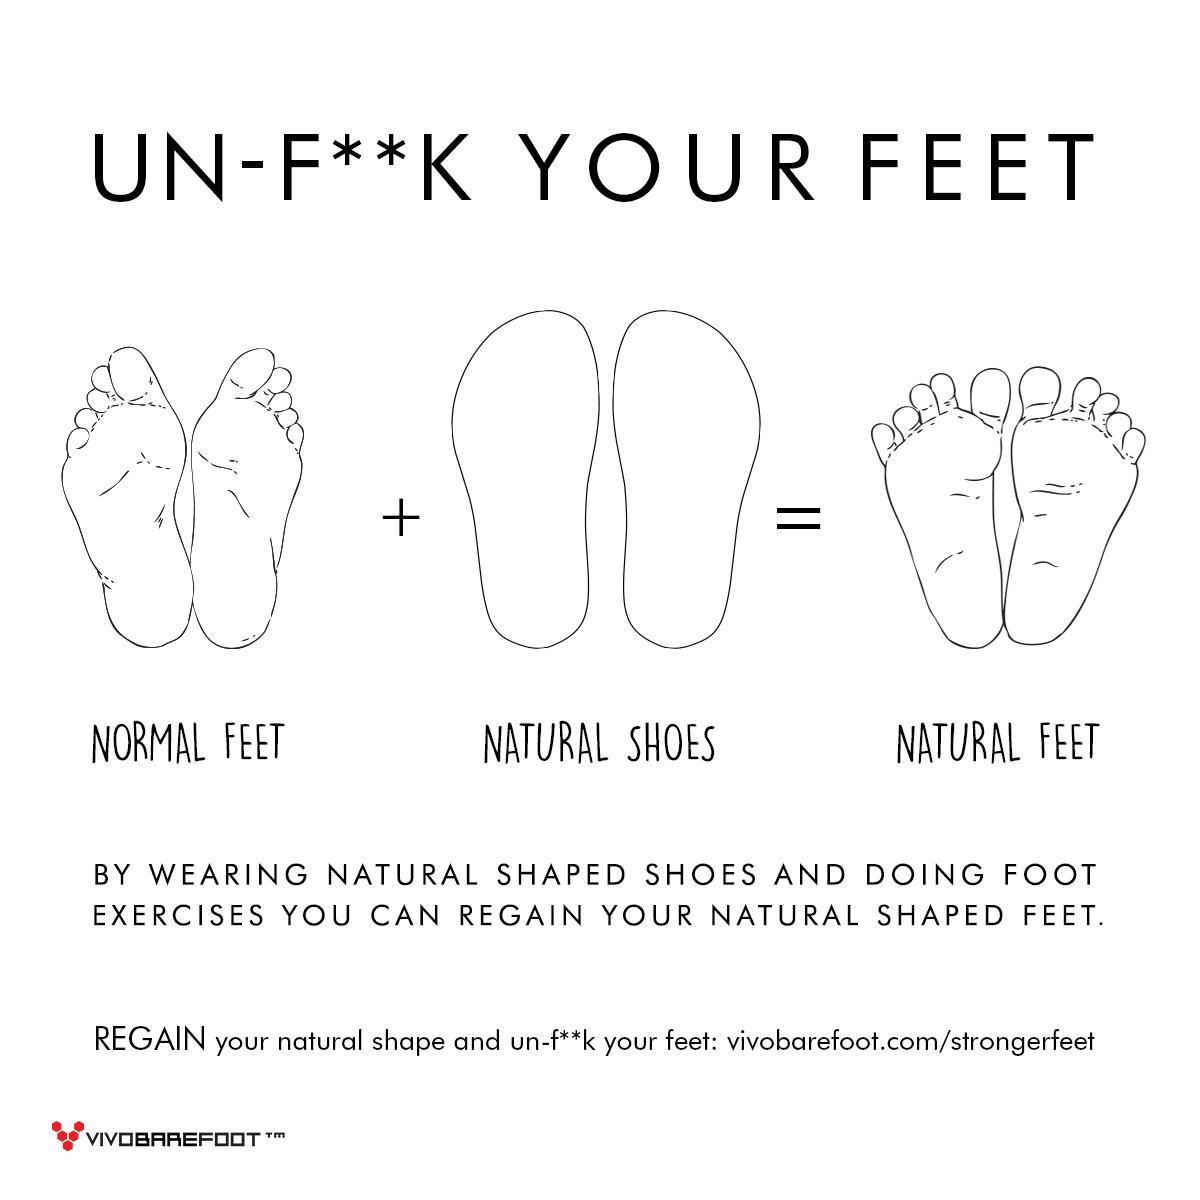 It's time to un-fuck your feet. http://t.co/5NA0e0X4Tn #ForFootSake http://t.co/WXkoaZm3ml